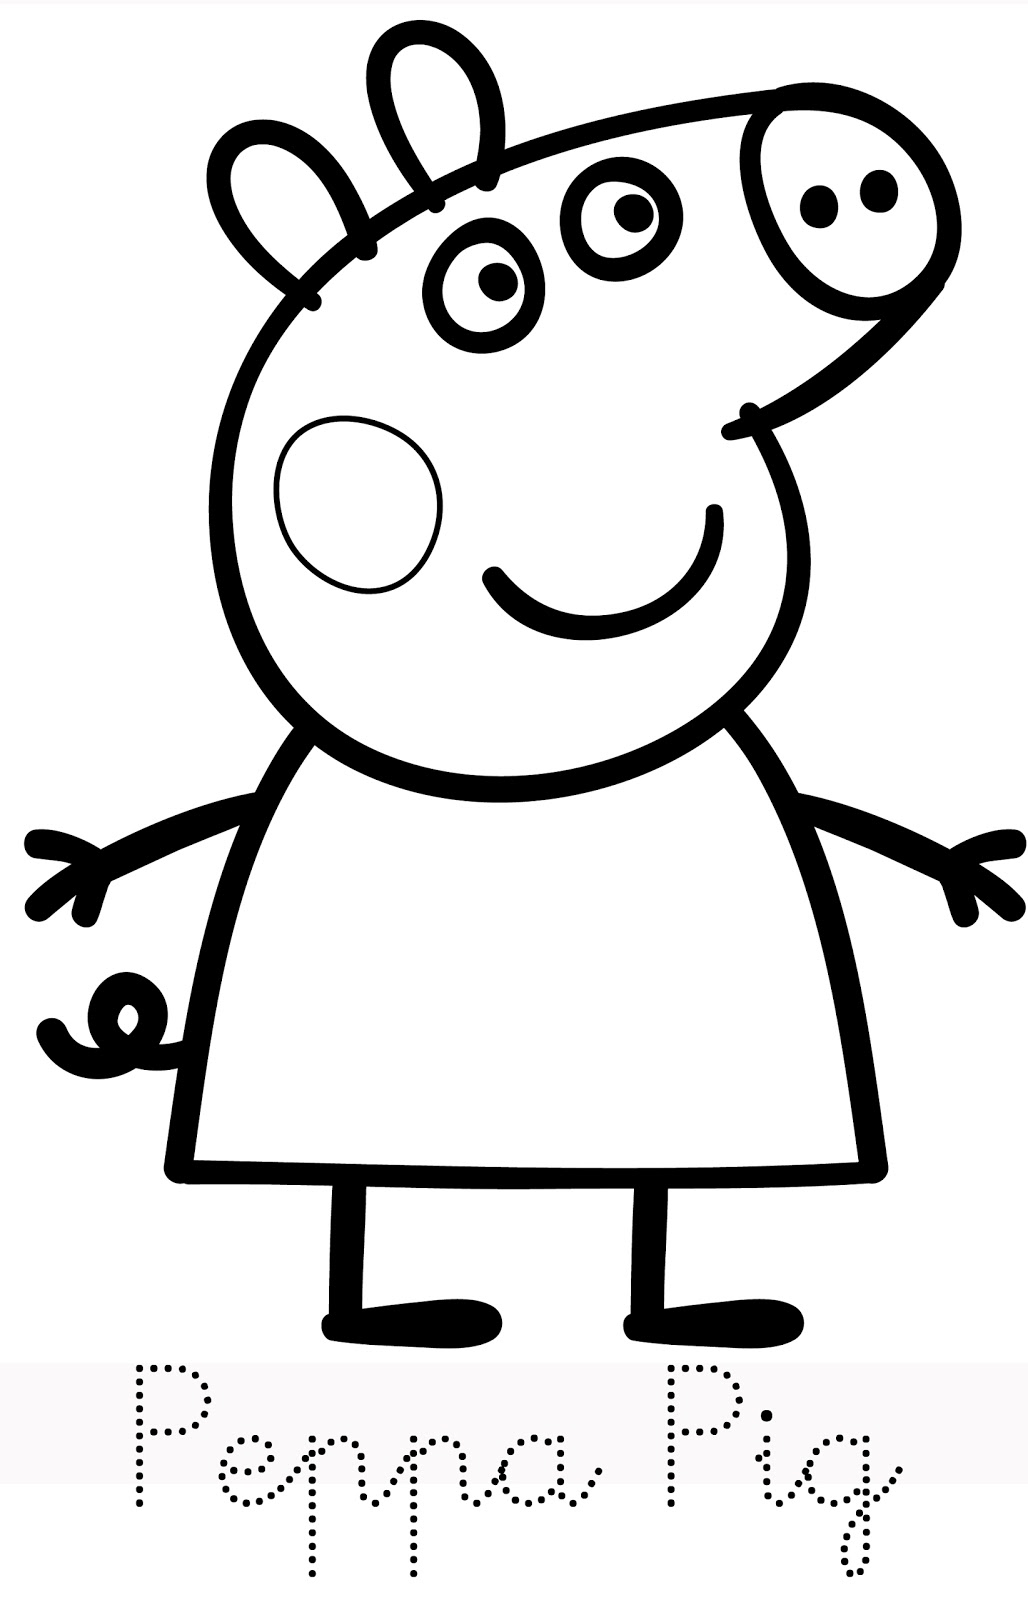 Baby potatoes: Family of Peppa Pig